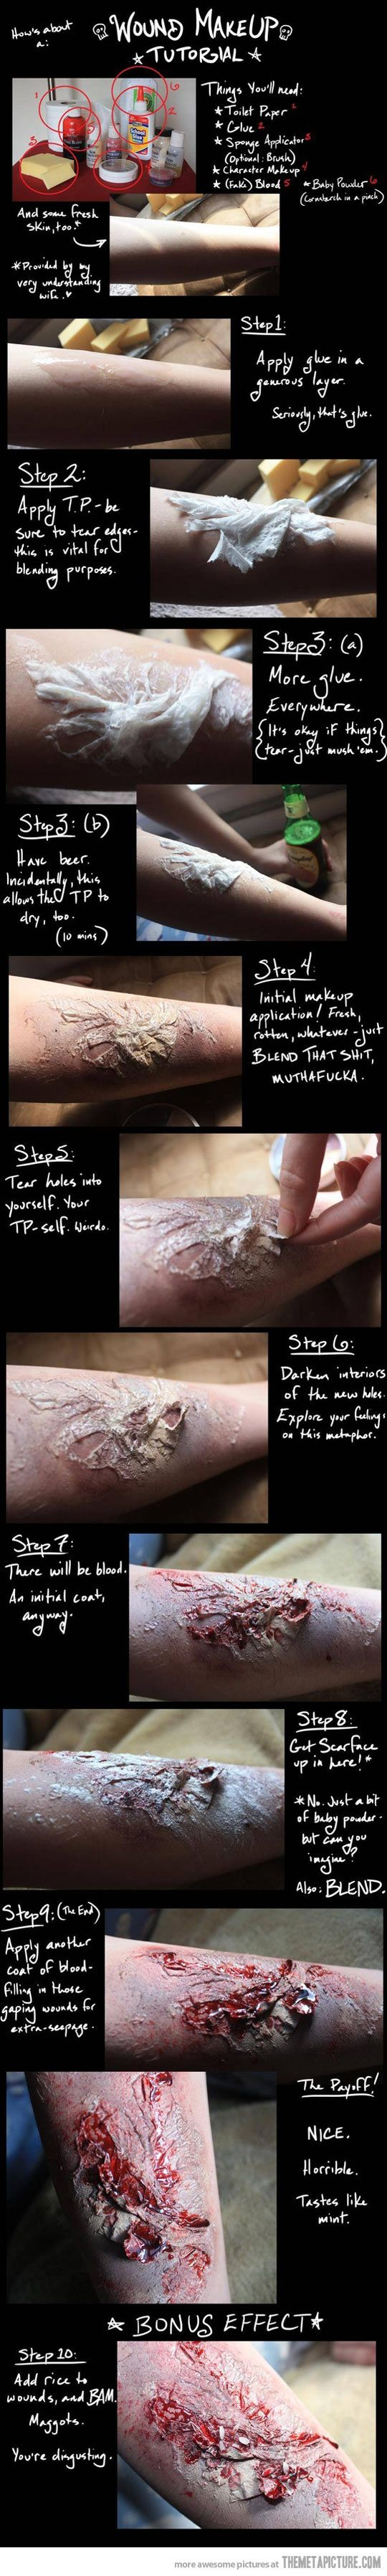 Wound Makeup… great tutorial. funny